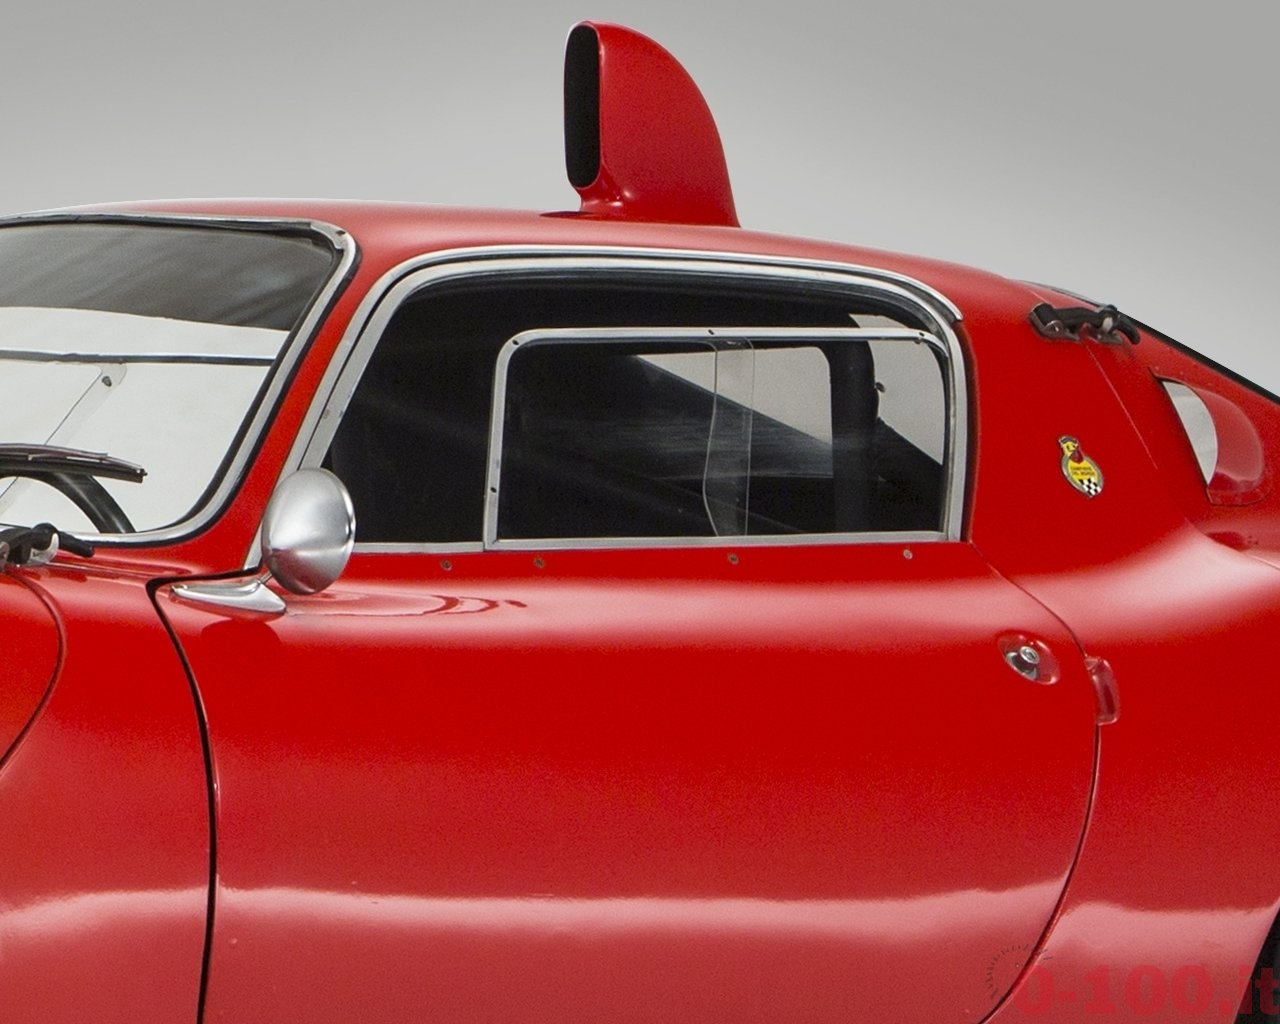 bonhams-at-goodwood-revival-2014-abarth-1300-ot-periscopio-coupe-1965_0-100_11